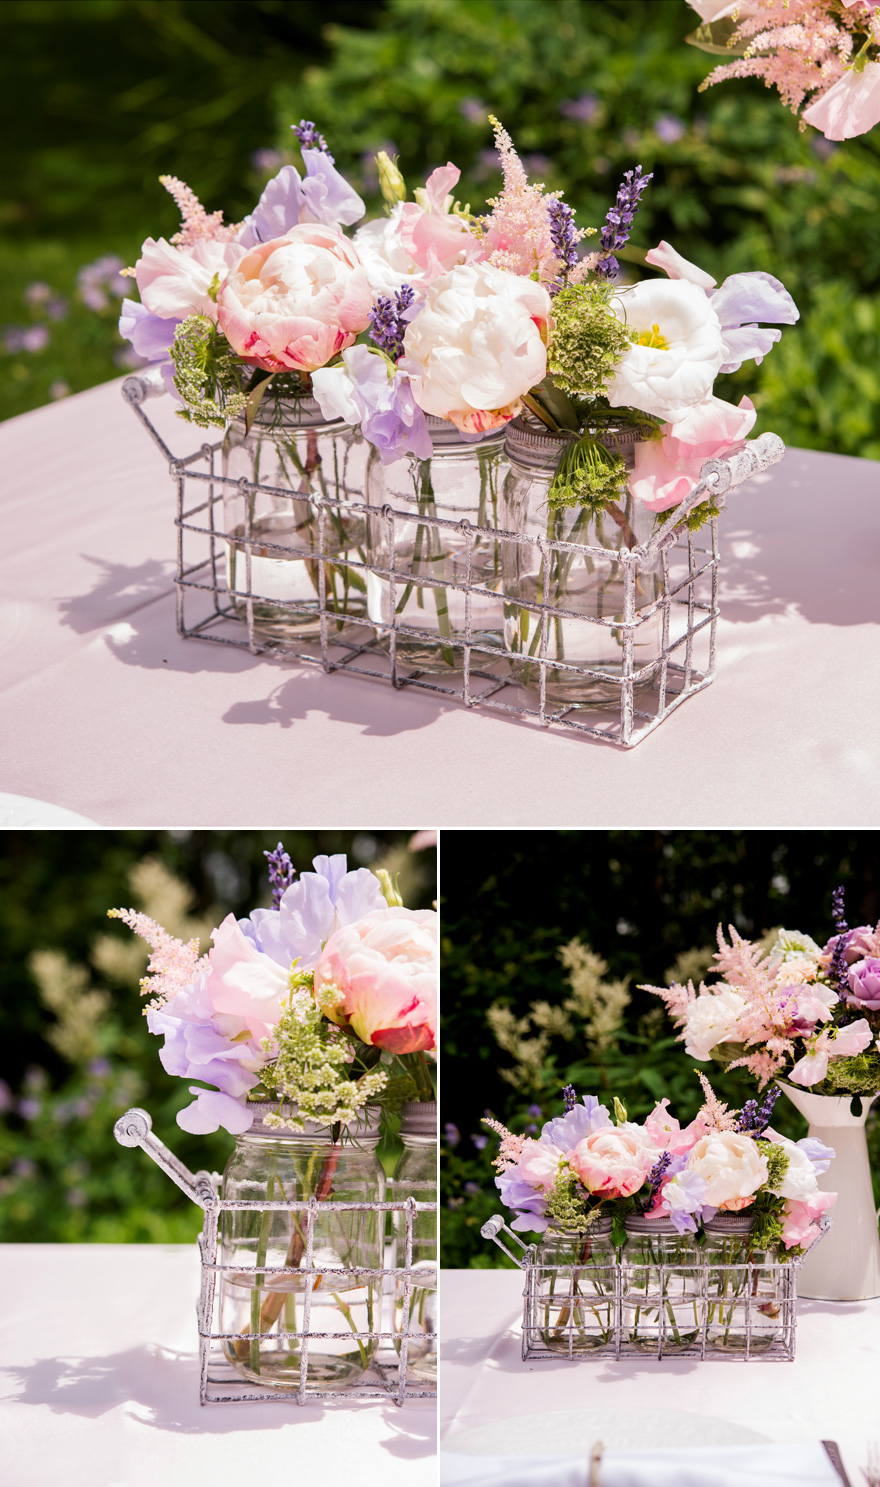 Pastel Wedding Flowers - Garden Party Wedding Theme | Confetti.co.uk